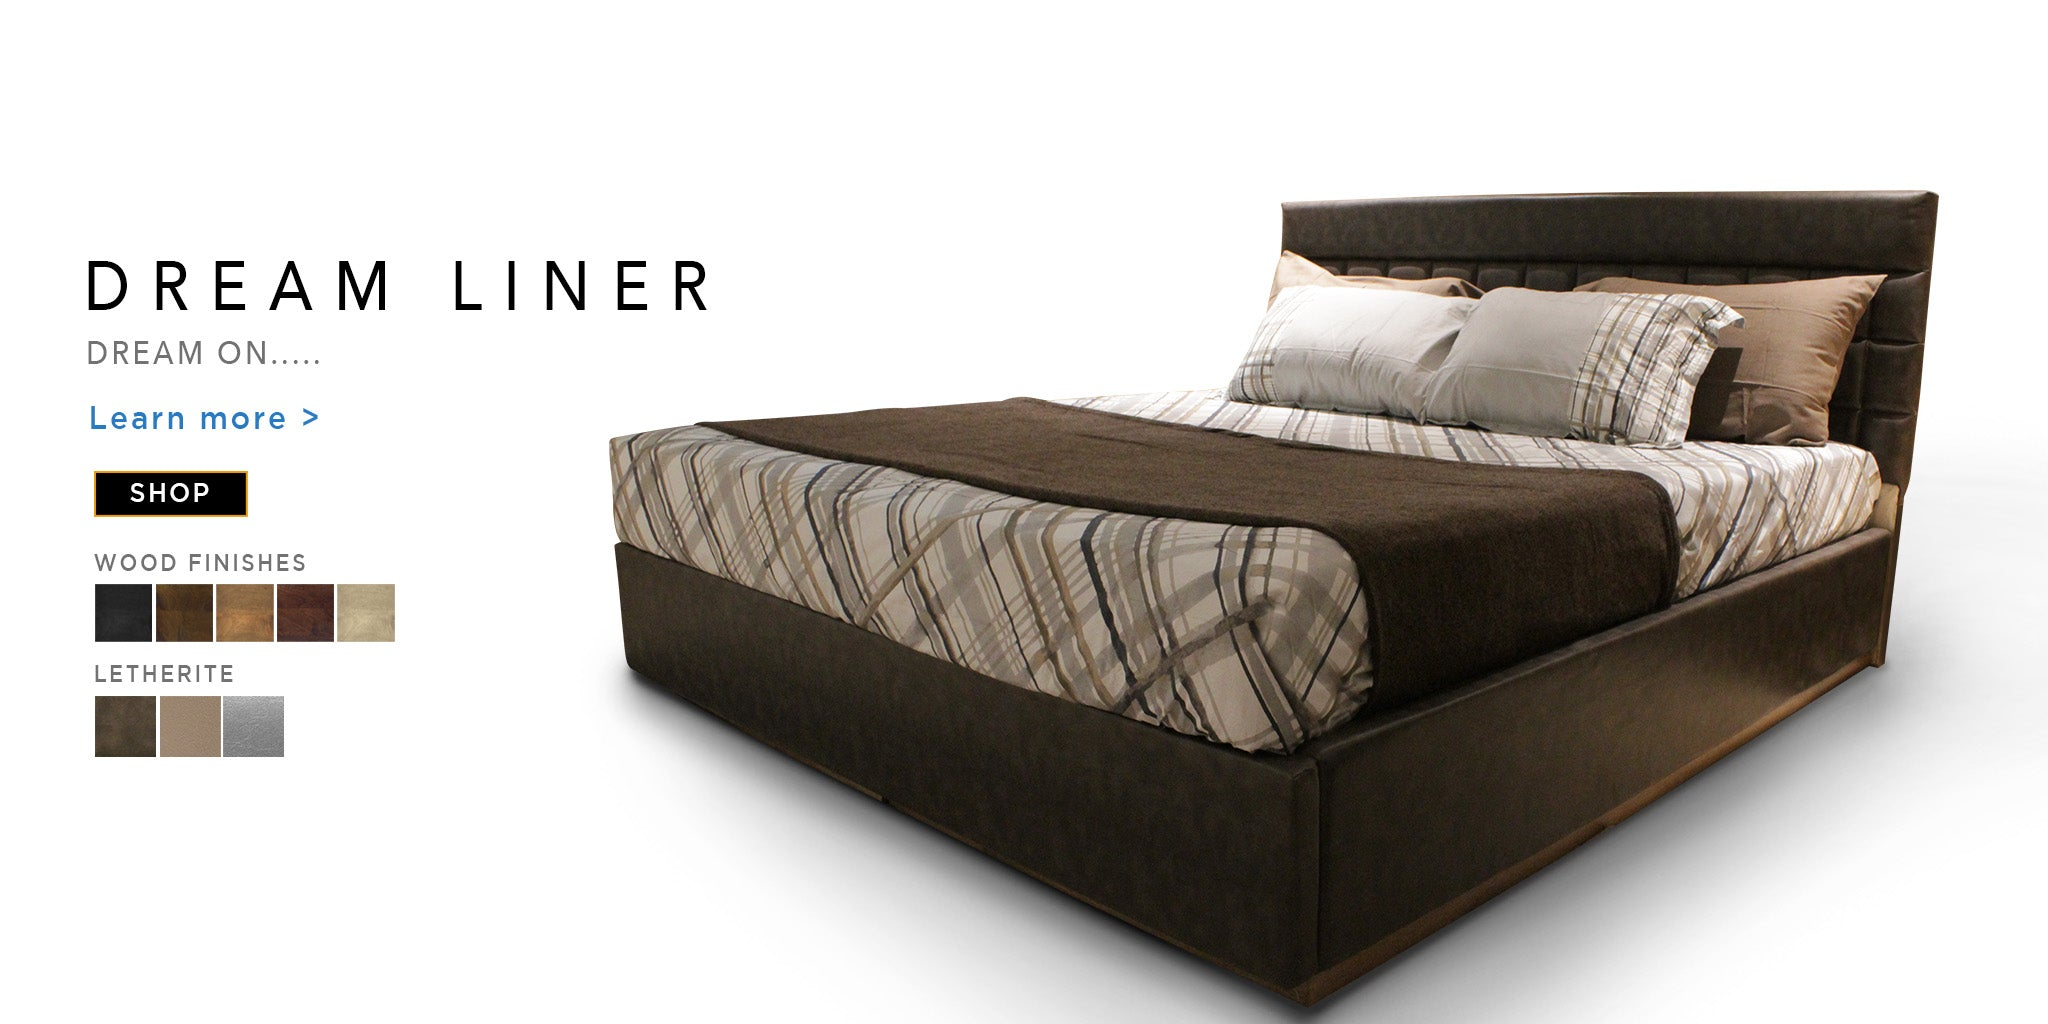 Counter Culture Dream Liner Double Bed Catalogue Page